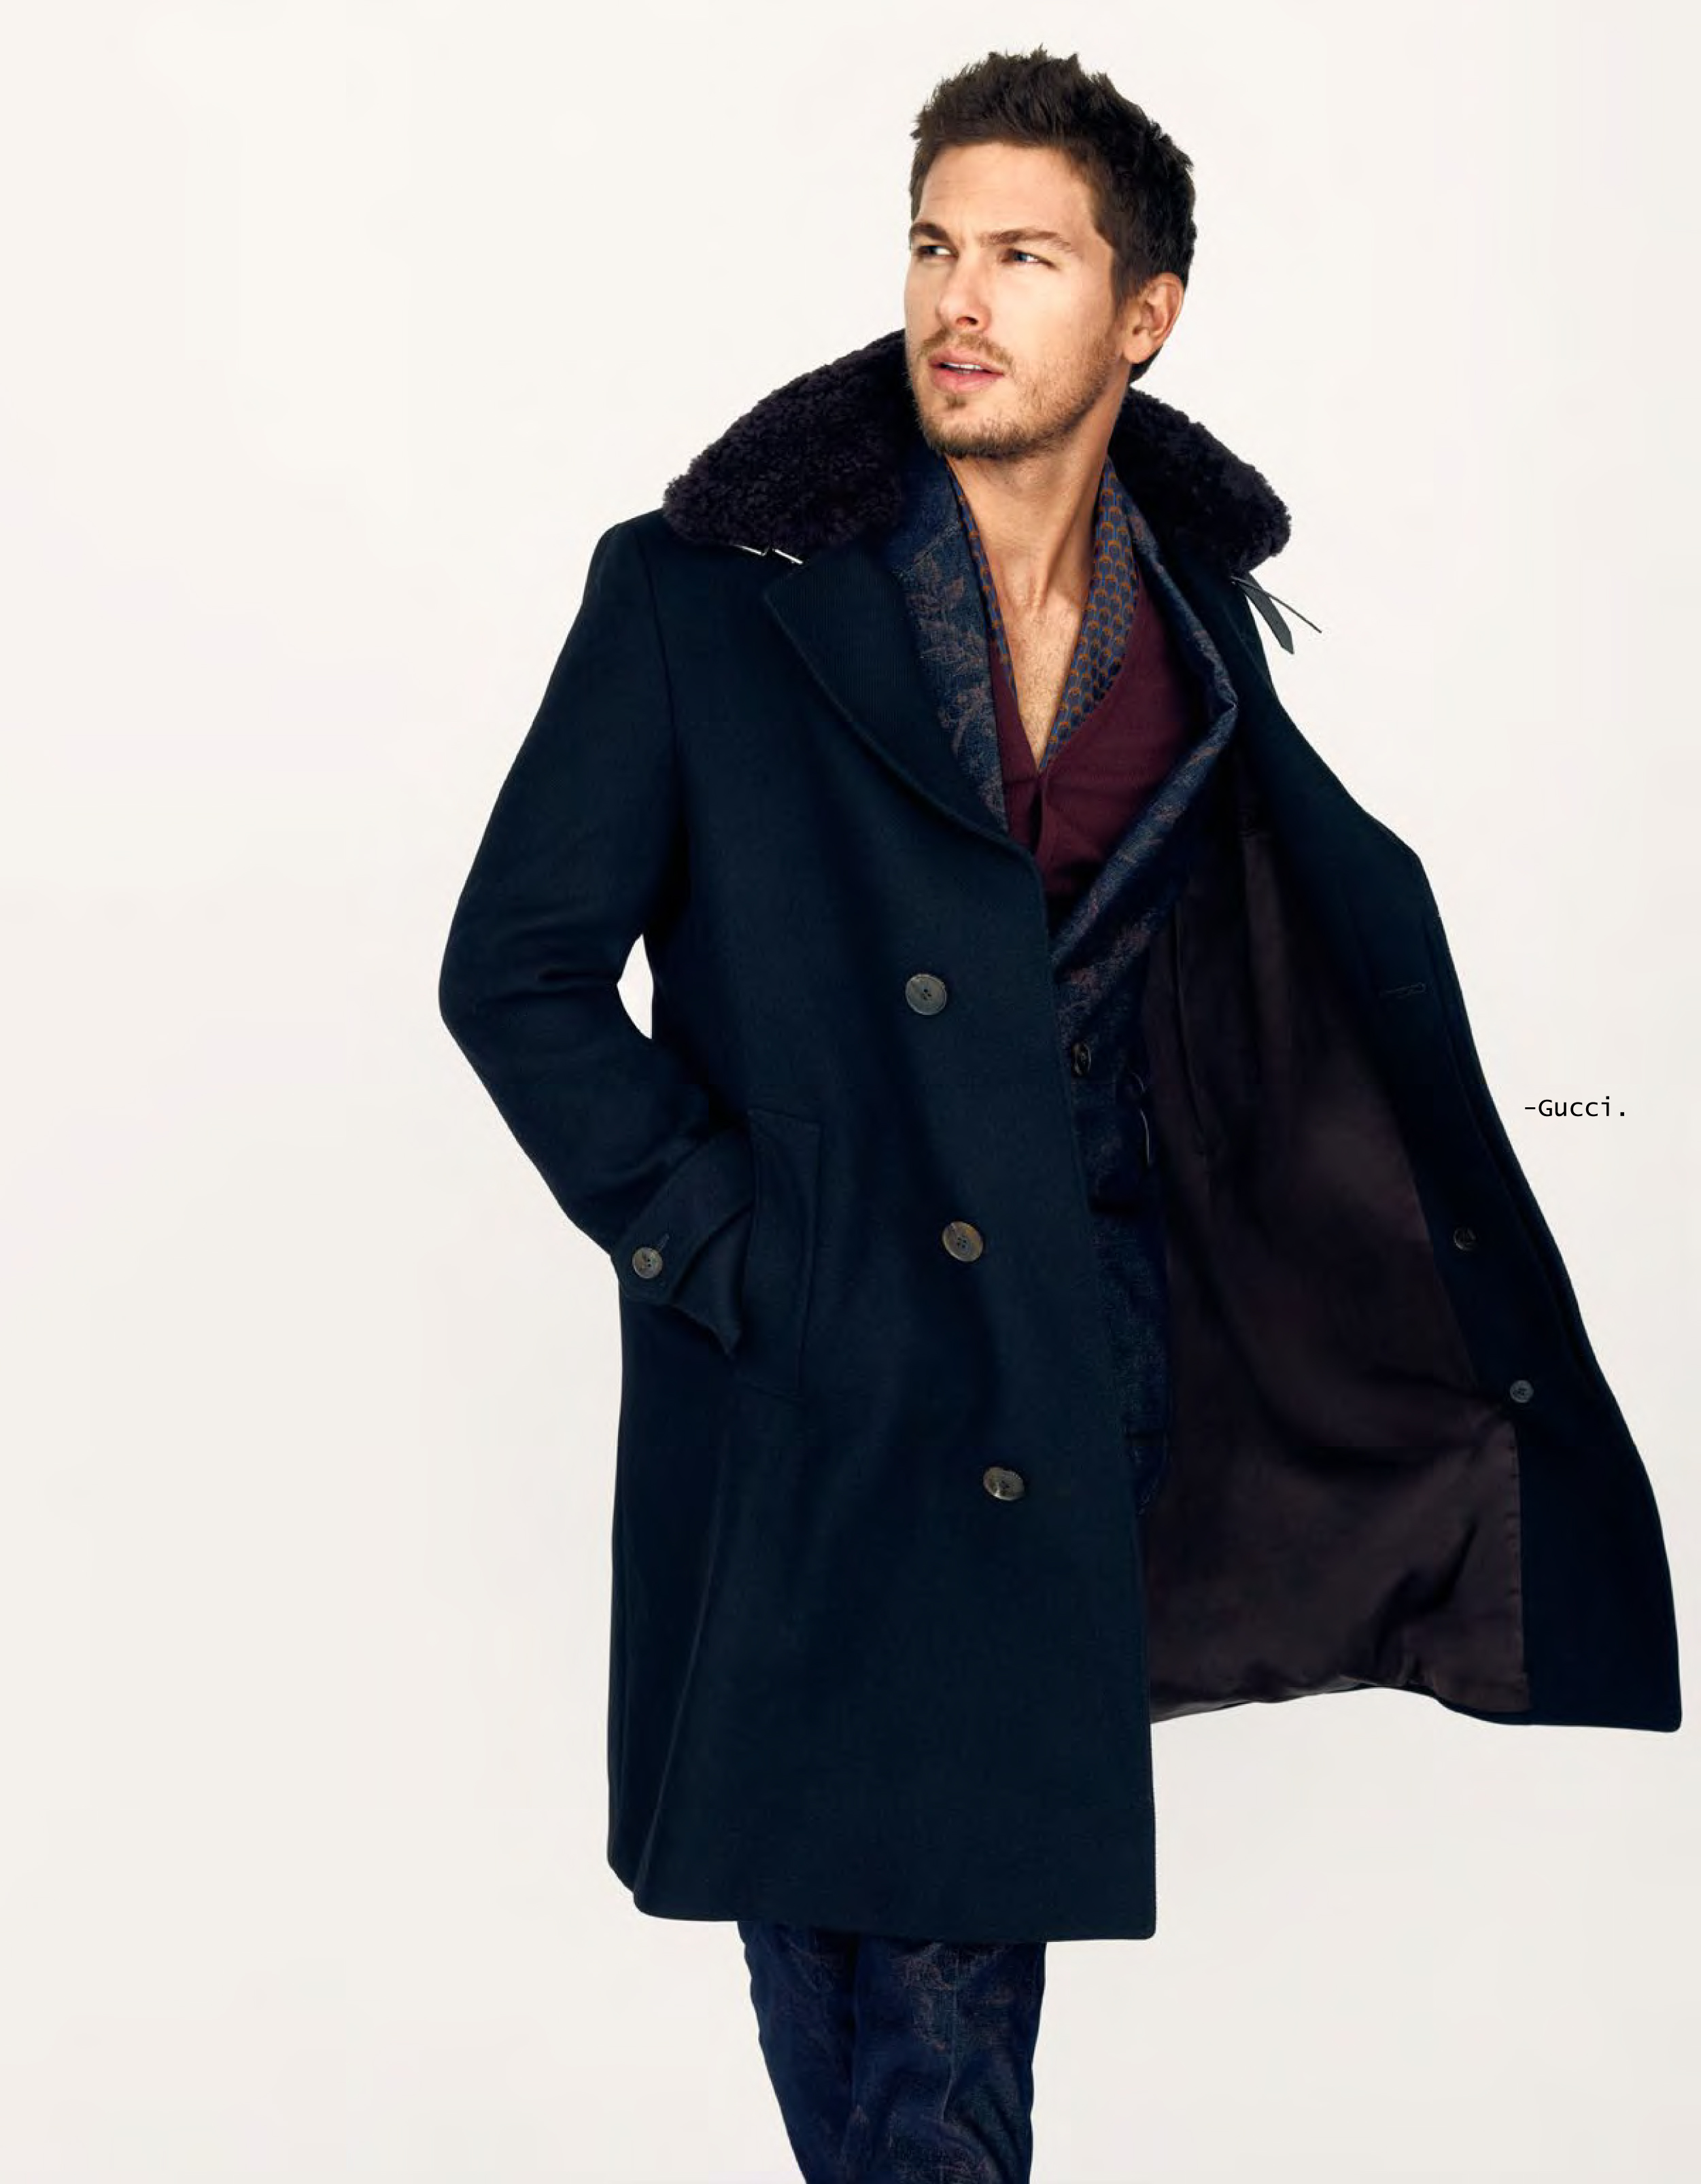 Adam Senn Charms for El Palacio De Hierro Christmas 2012 Lookbook